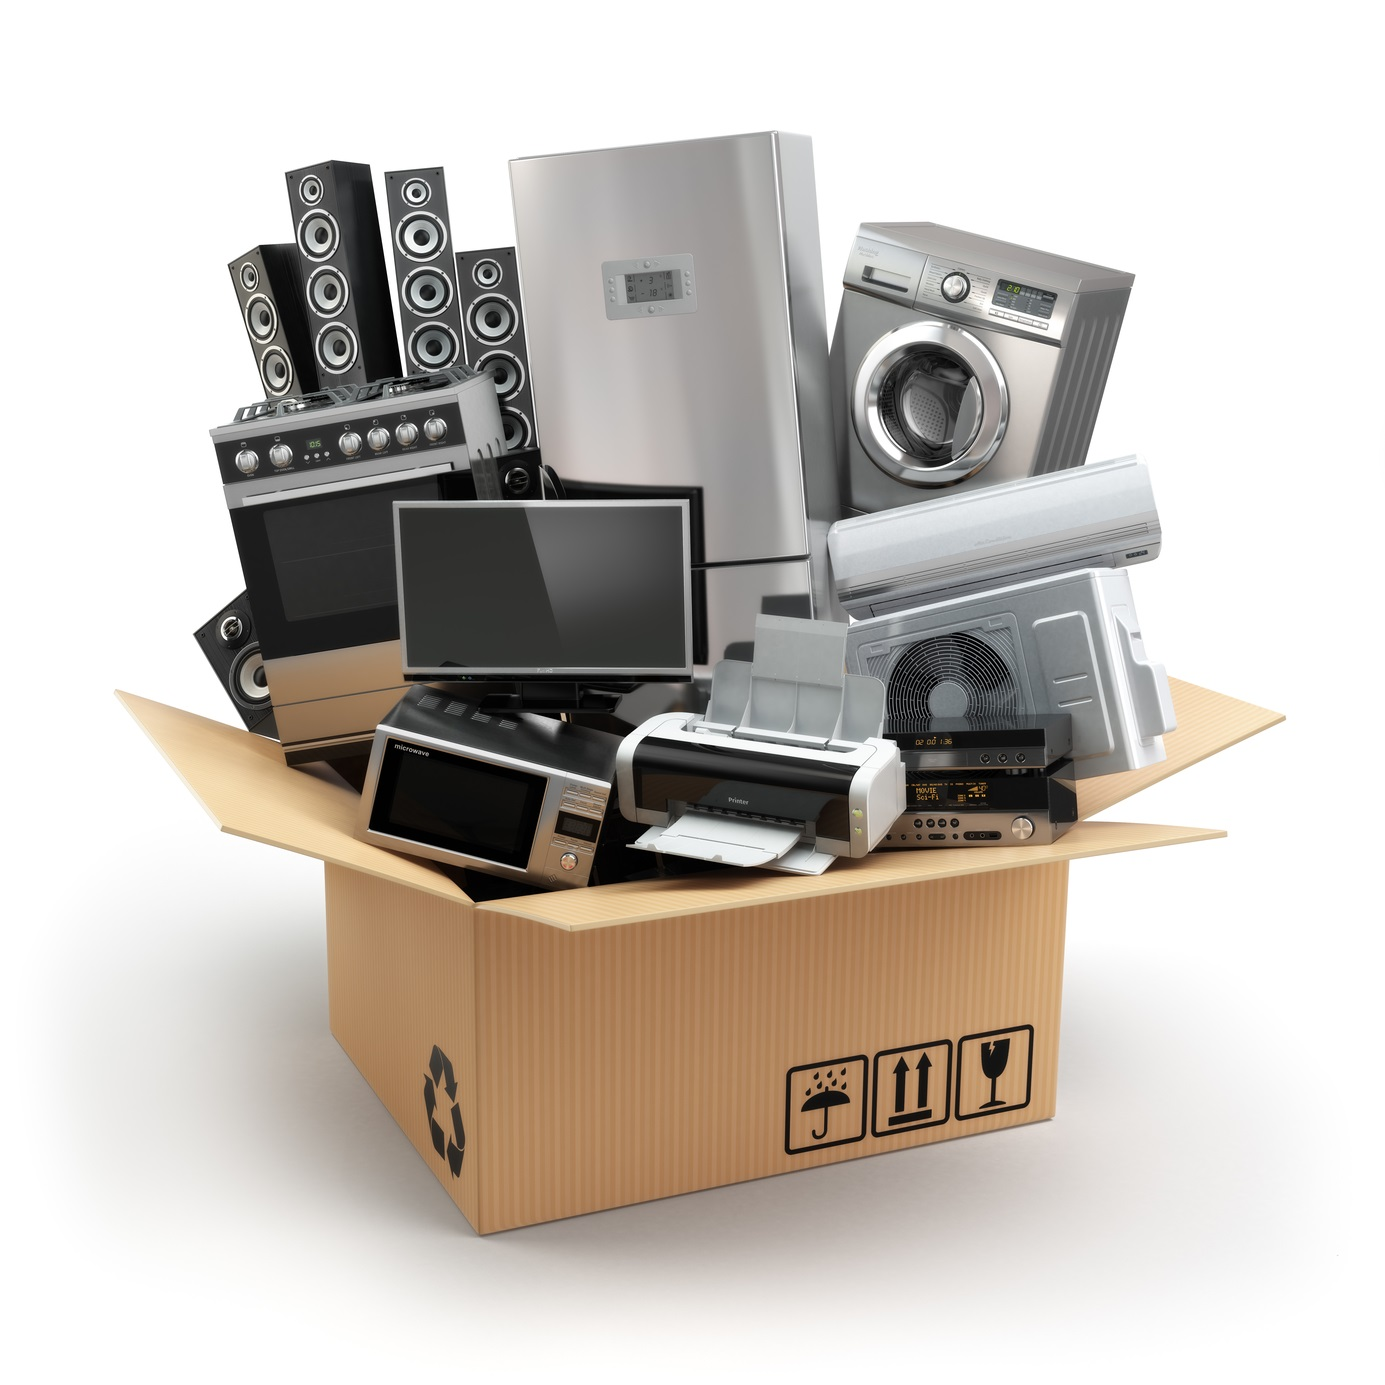 How to Import Electronic Products